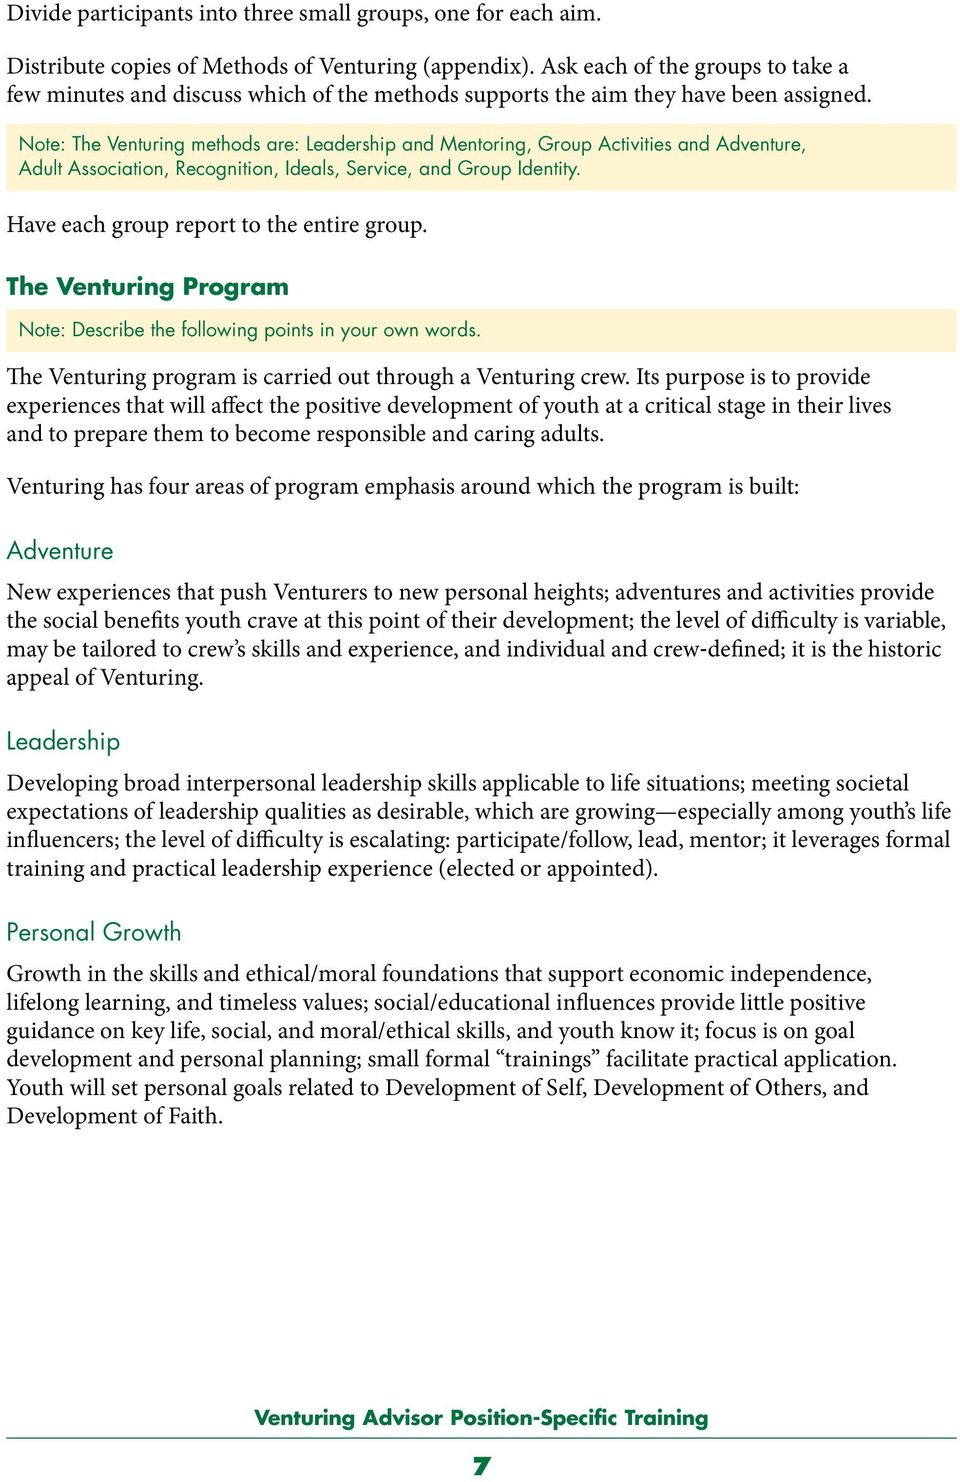 Note: The Venturing methods are: Leadership and Mentoring, Group Activities and Adventure, Adult Association, Recognition, Ideals, Service, and Group Identity.